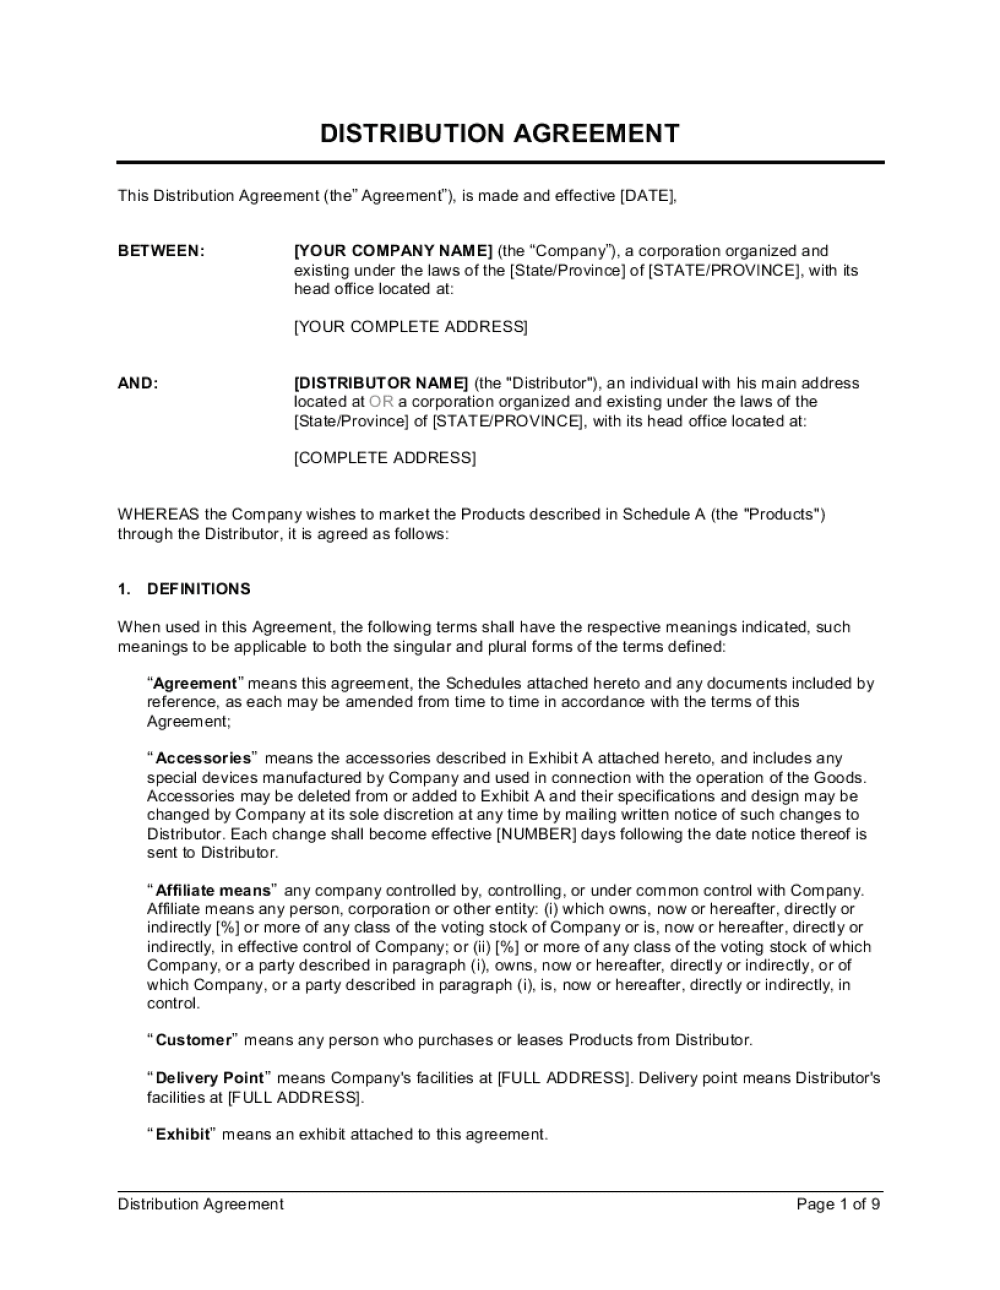 Business-in-a-Box's Distribution Agreement Template